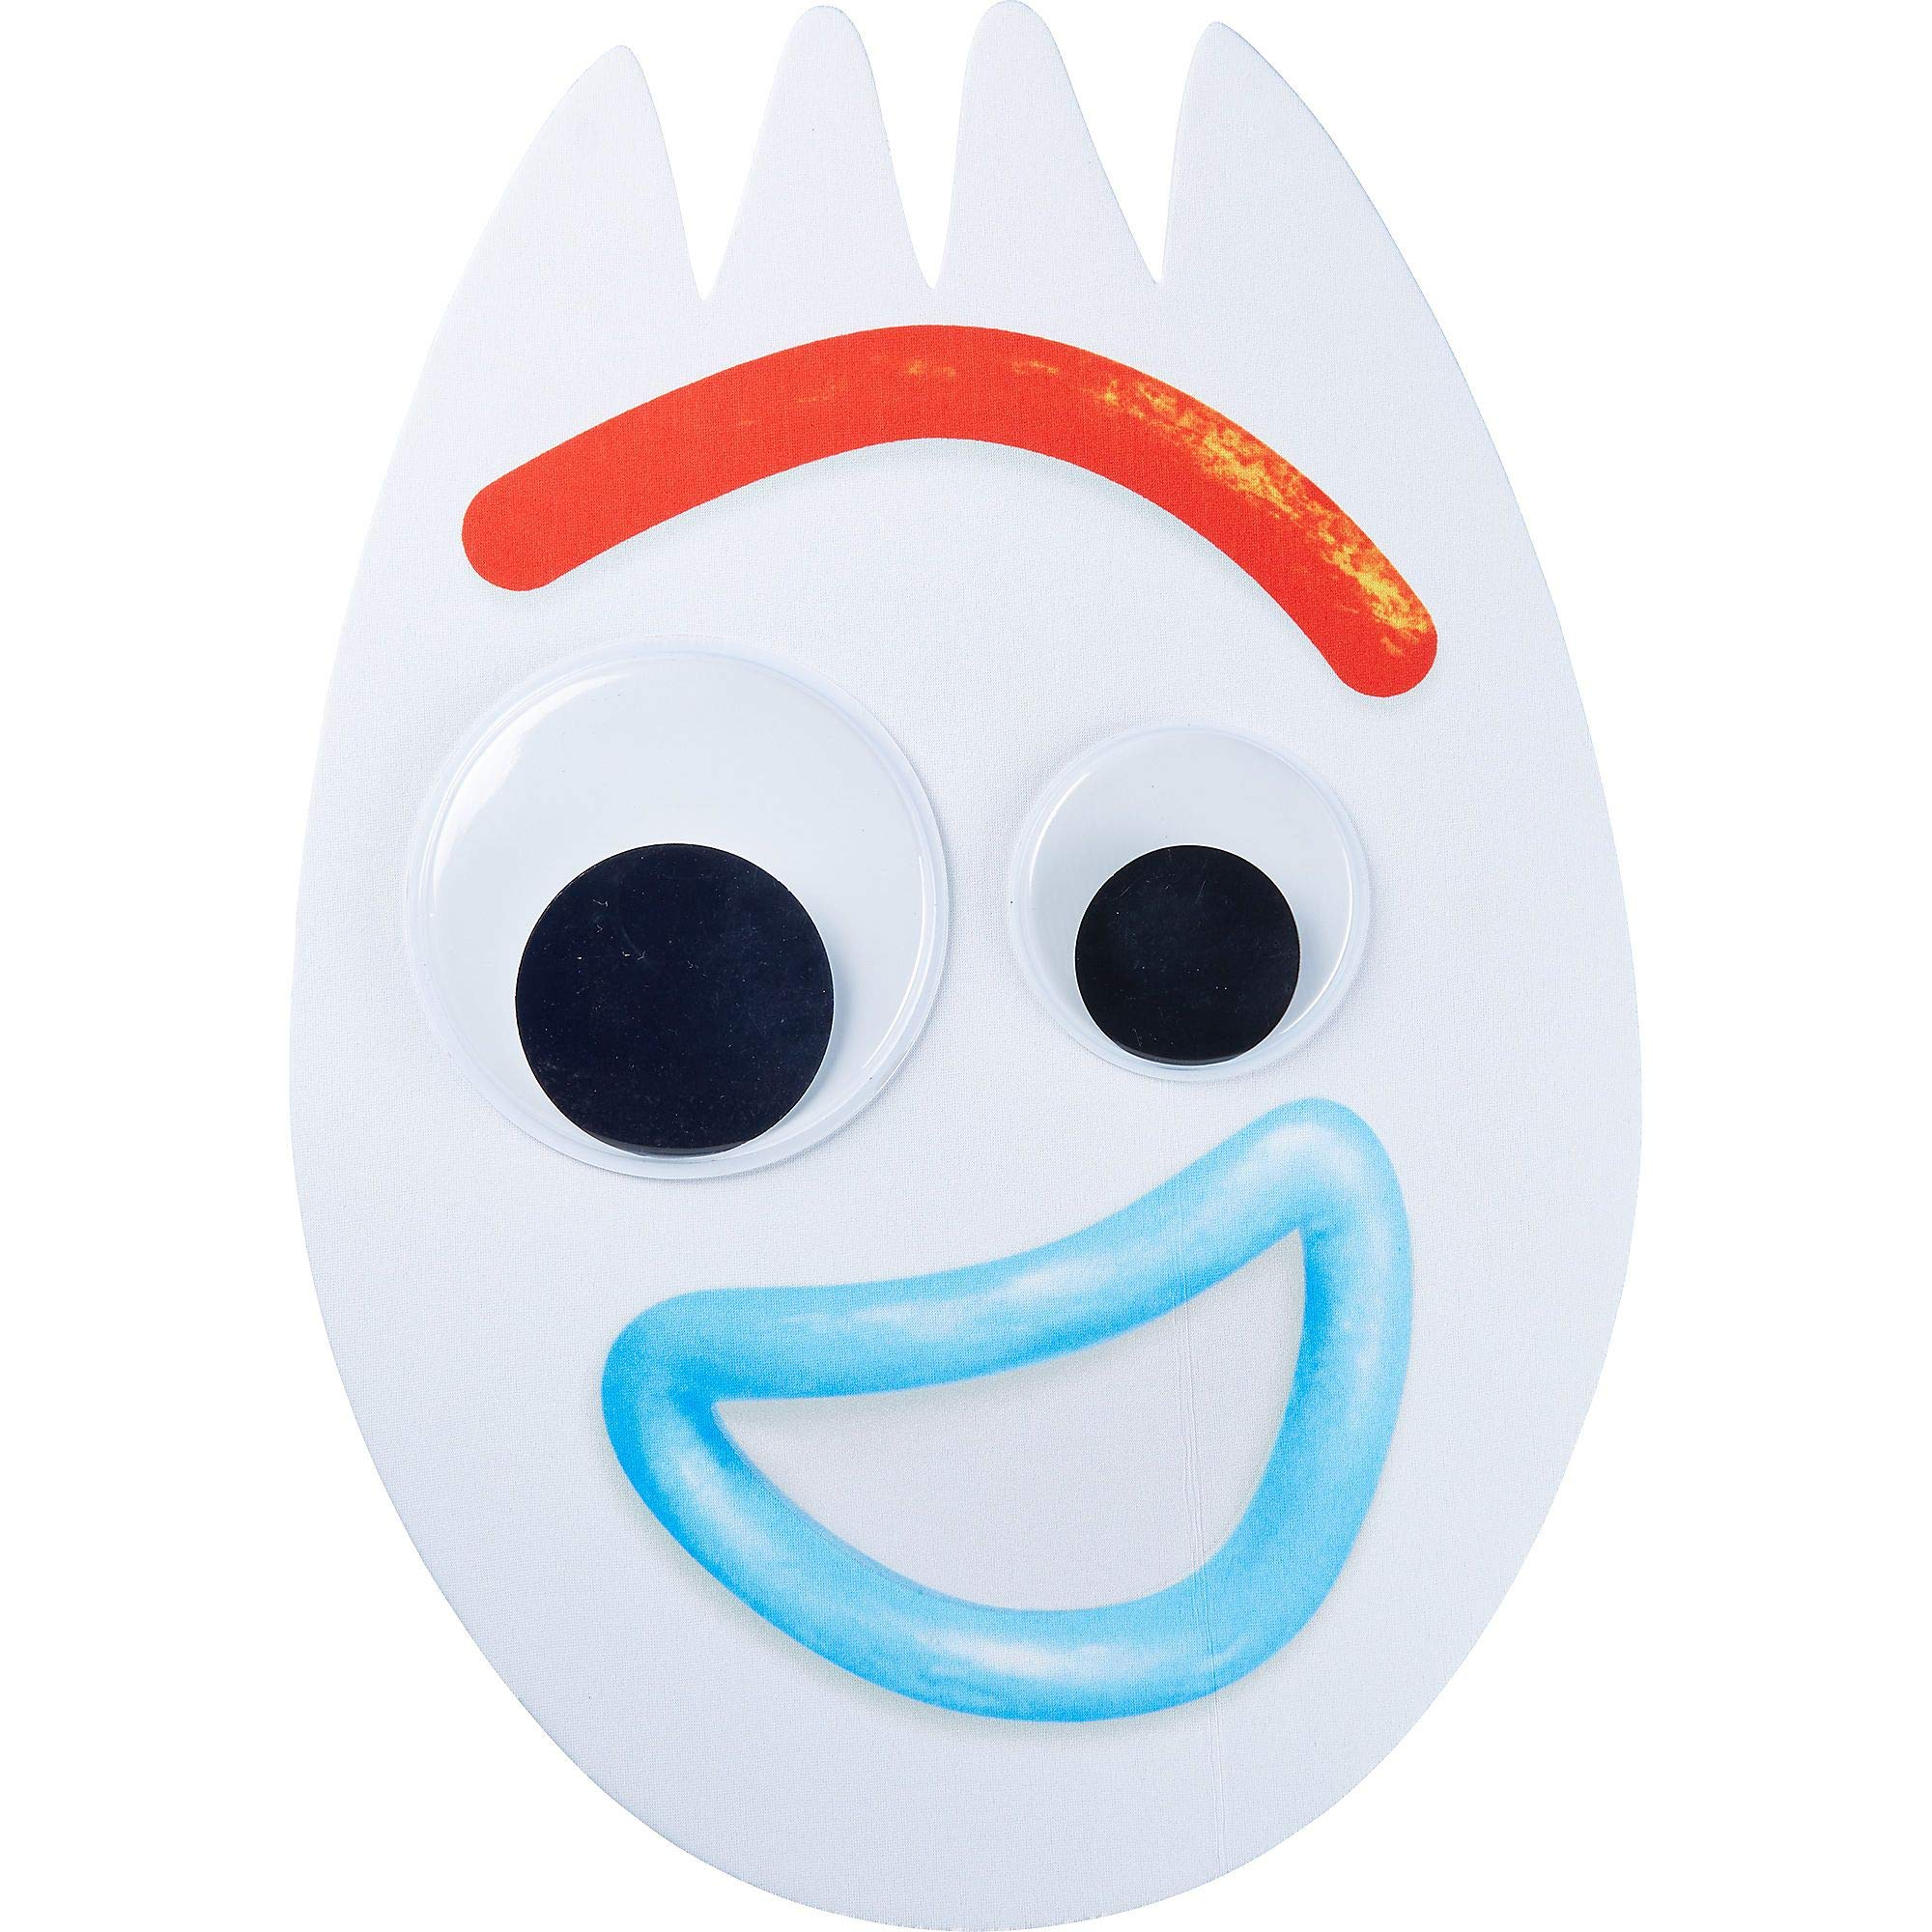 Party City Toy Story 4 Forky Mask for Children, One Size, Measures 11 3/4 Inches by 17 Inches with an Attached Elastic by Party City